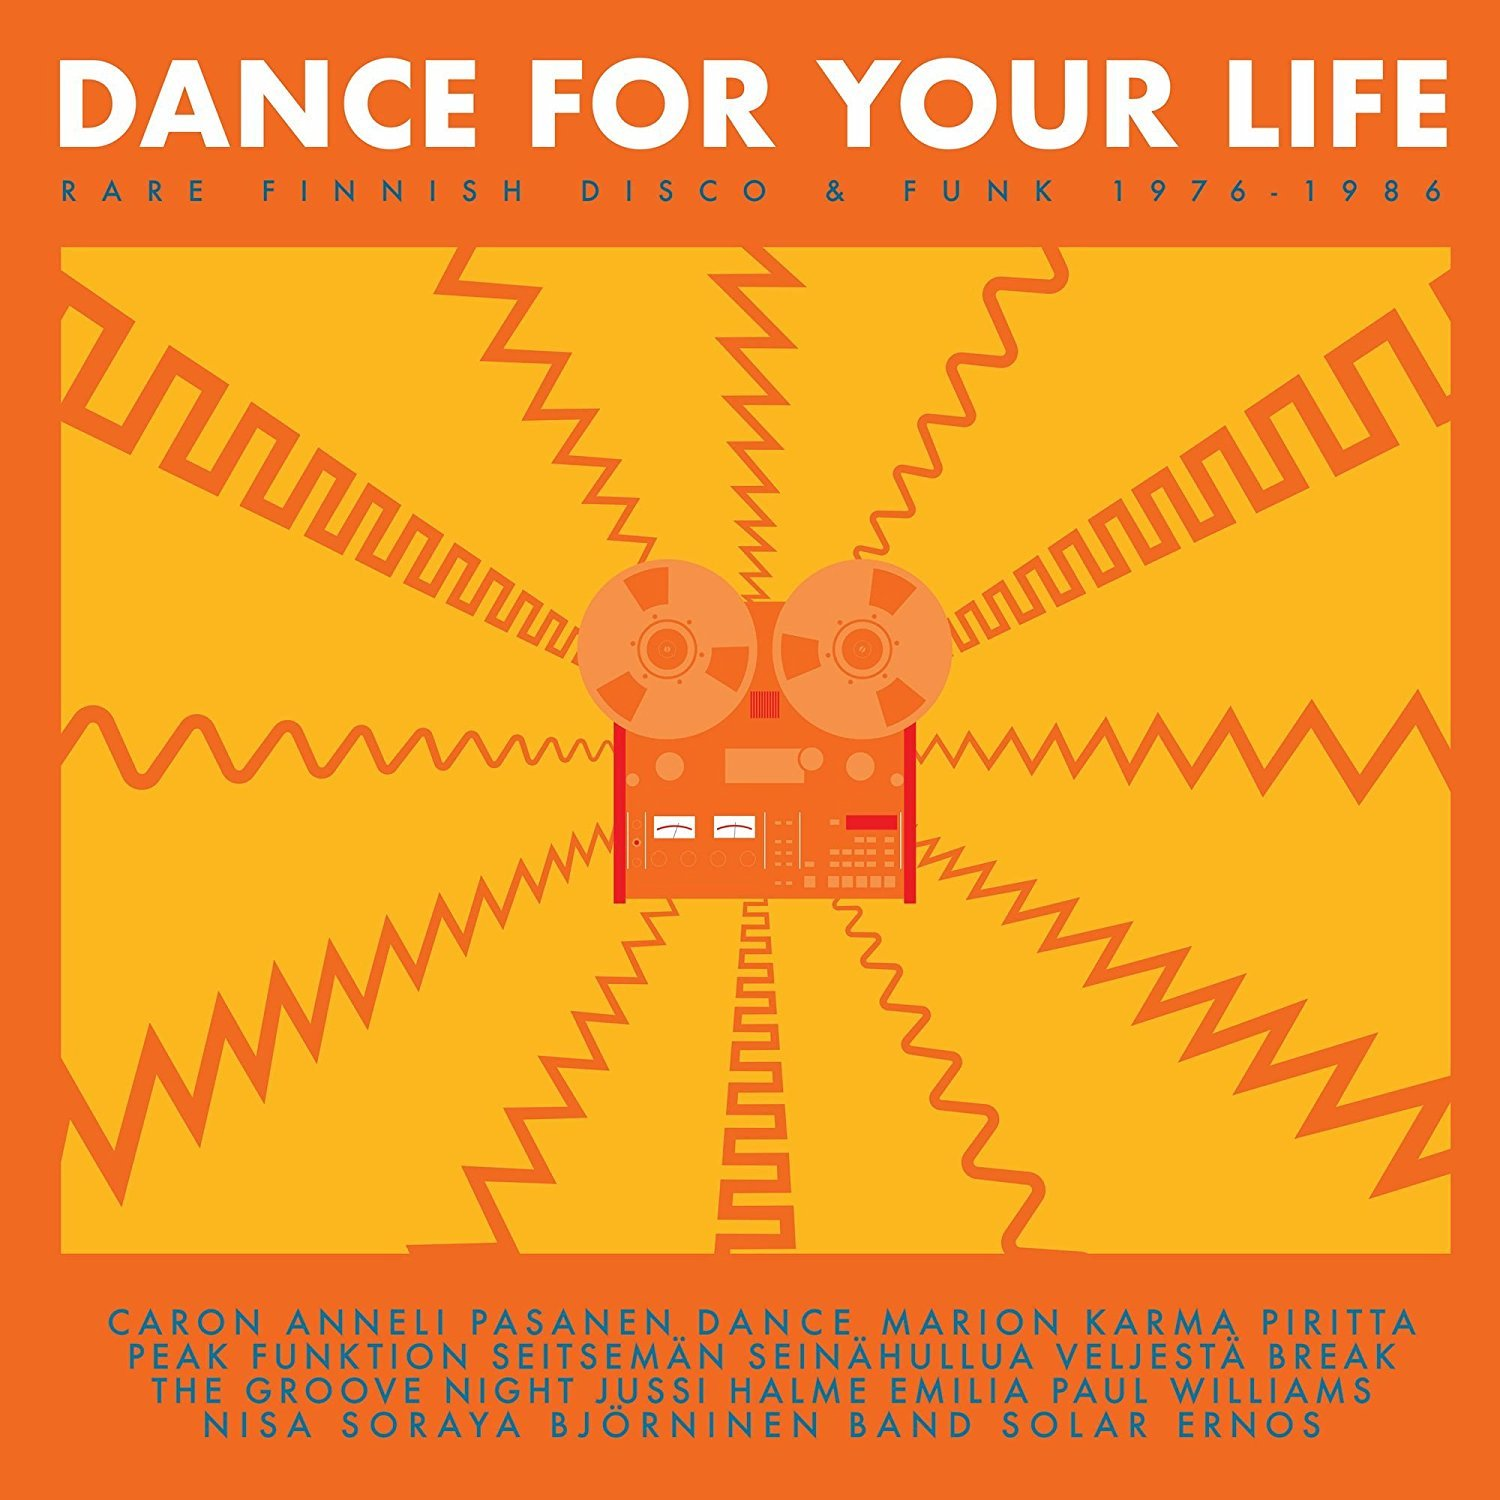 Vinilo : Various Artists - Dance For Your Life - Rare Finnish Funk & Disco 1976-1986 (2PC)